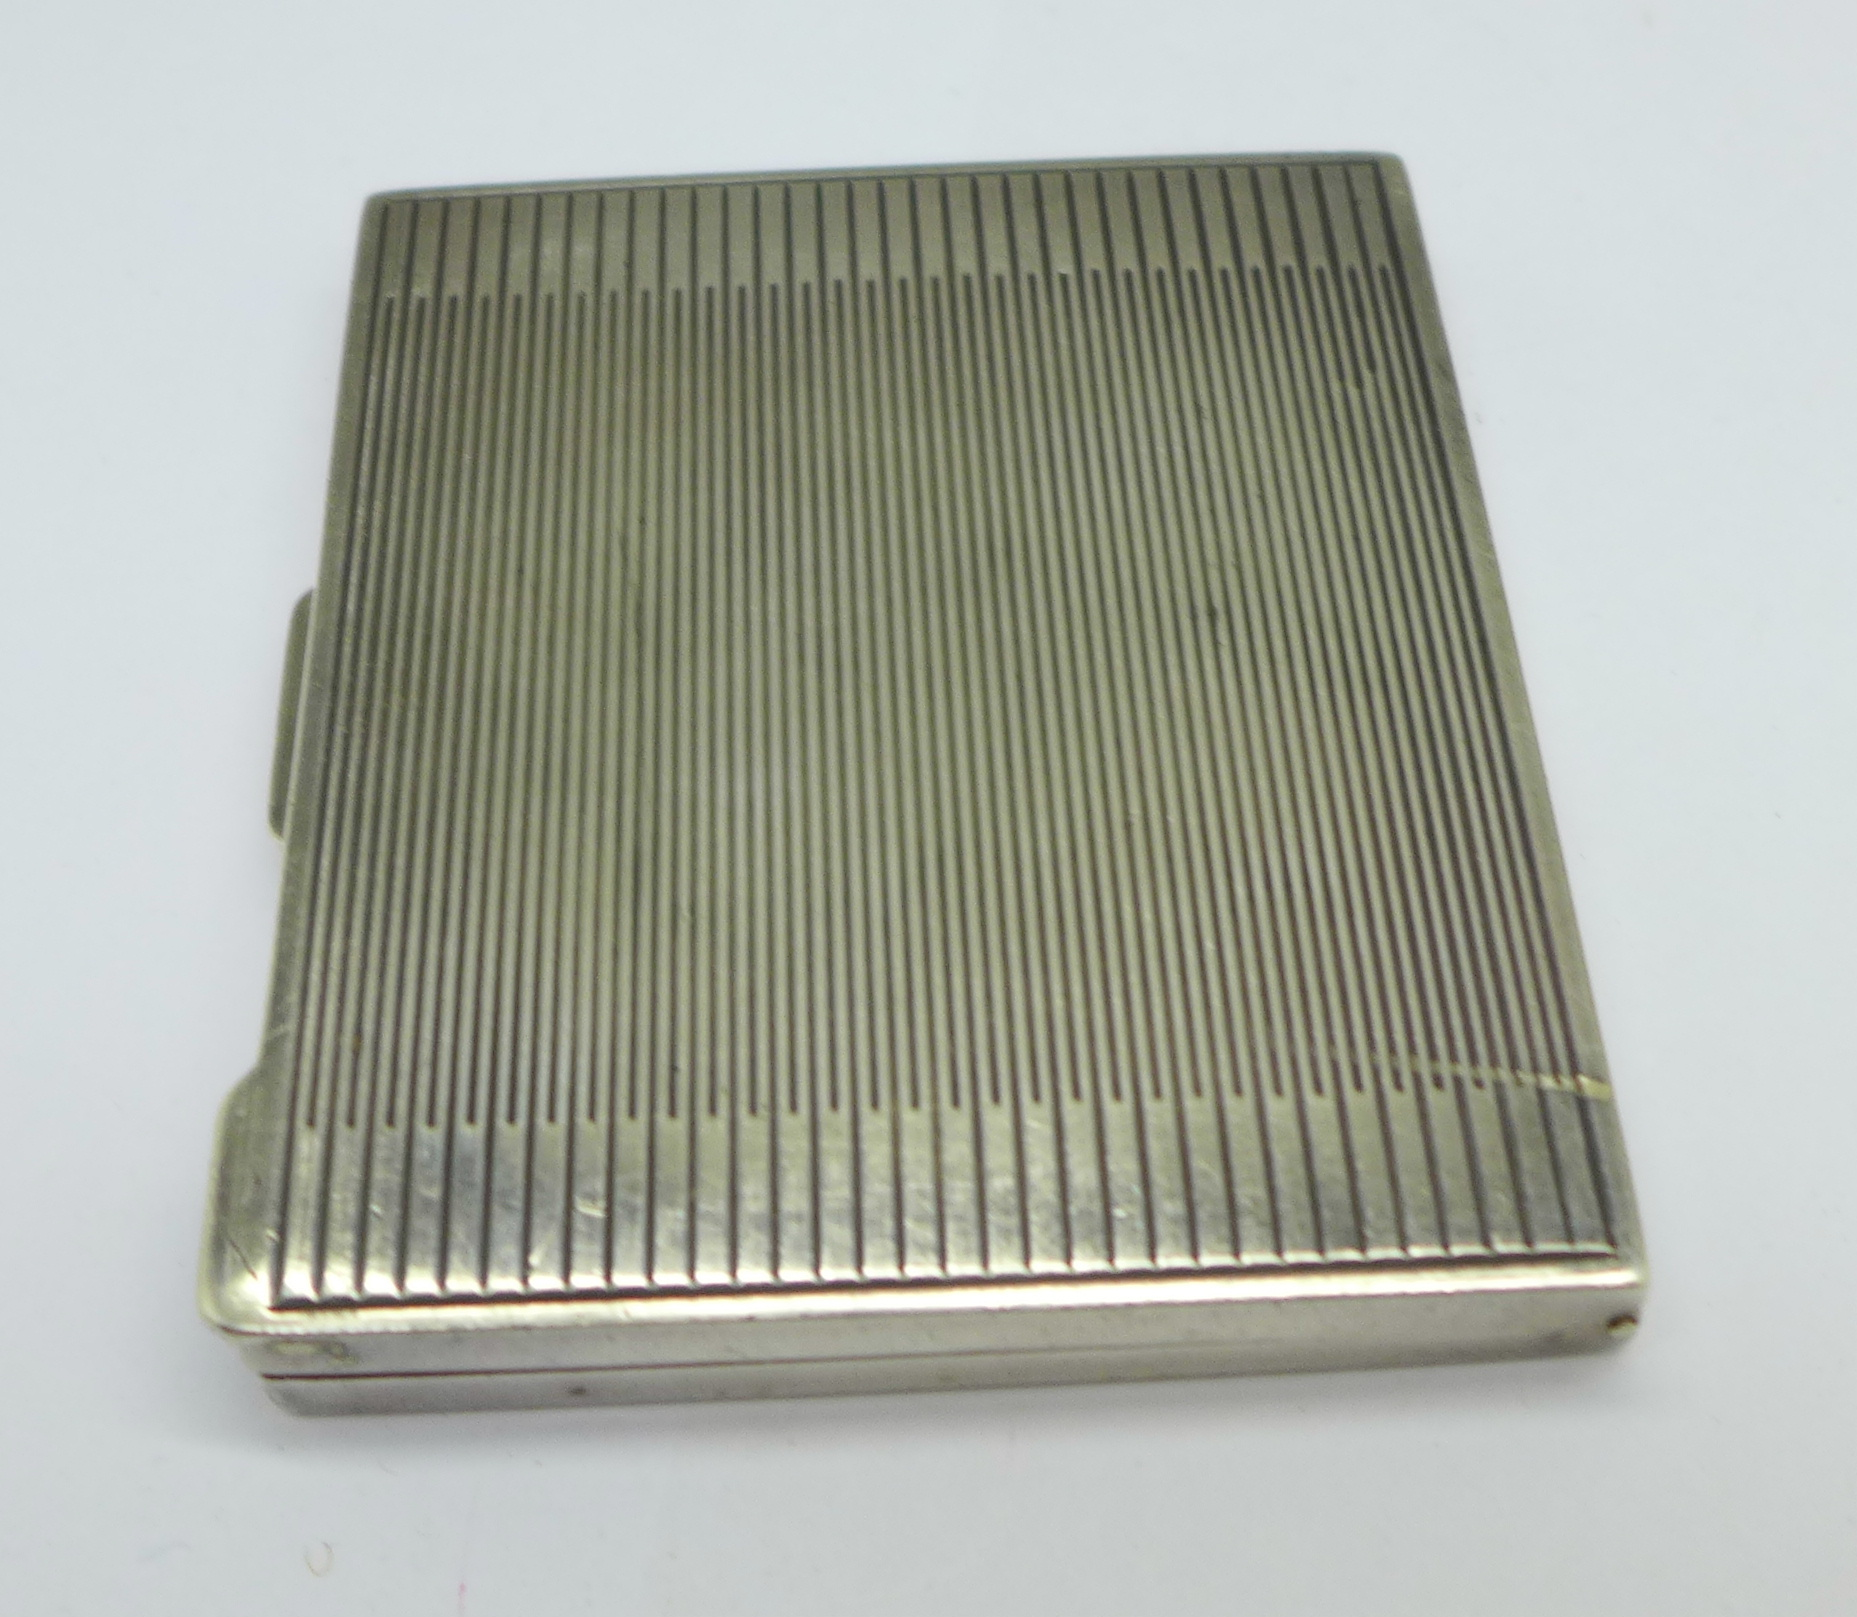 An Art Deco silver compact, London 1945, 80g - Image 3 of 5